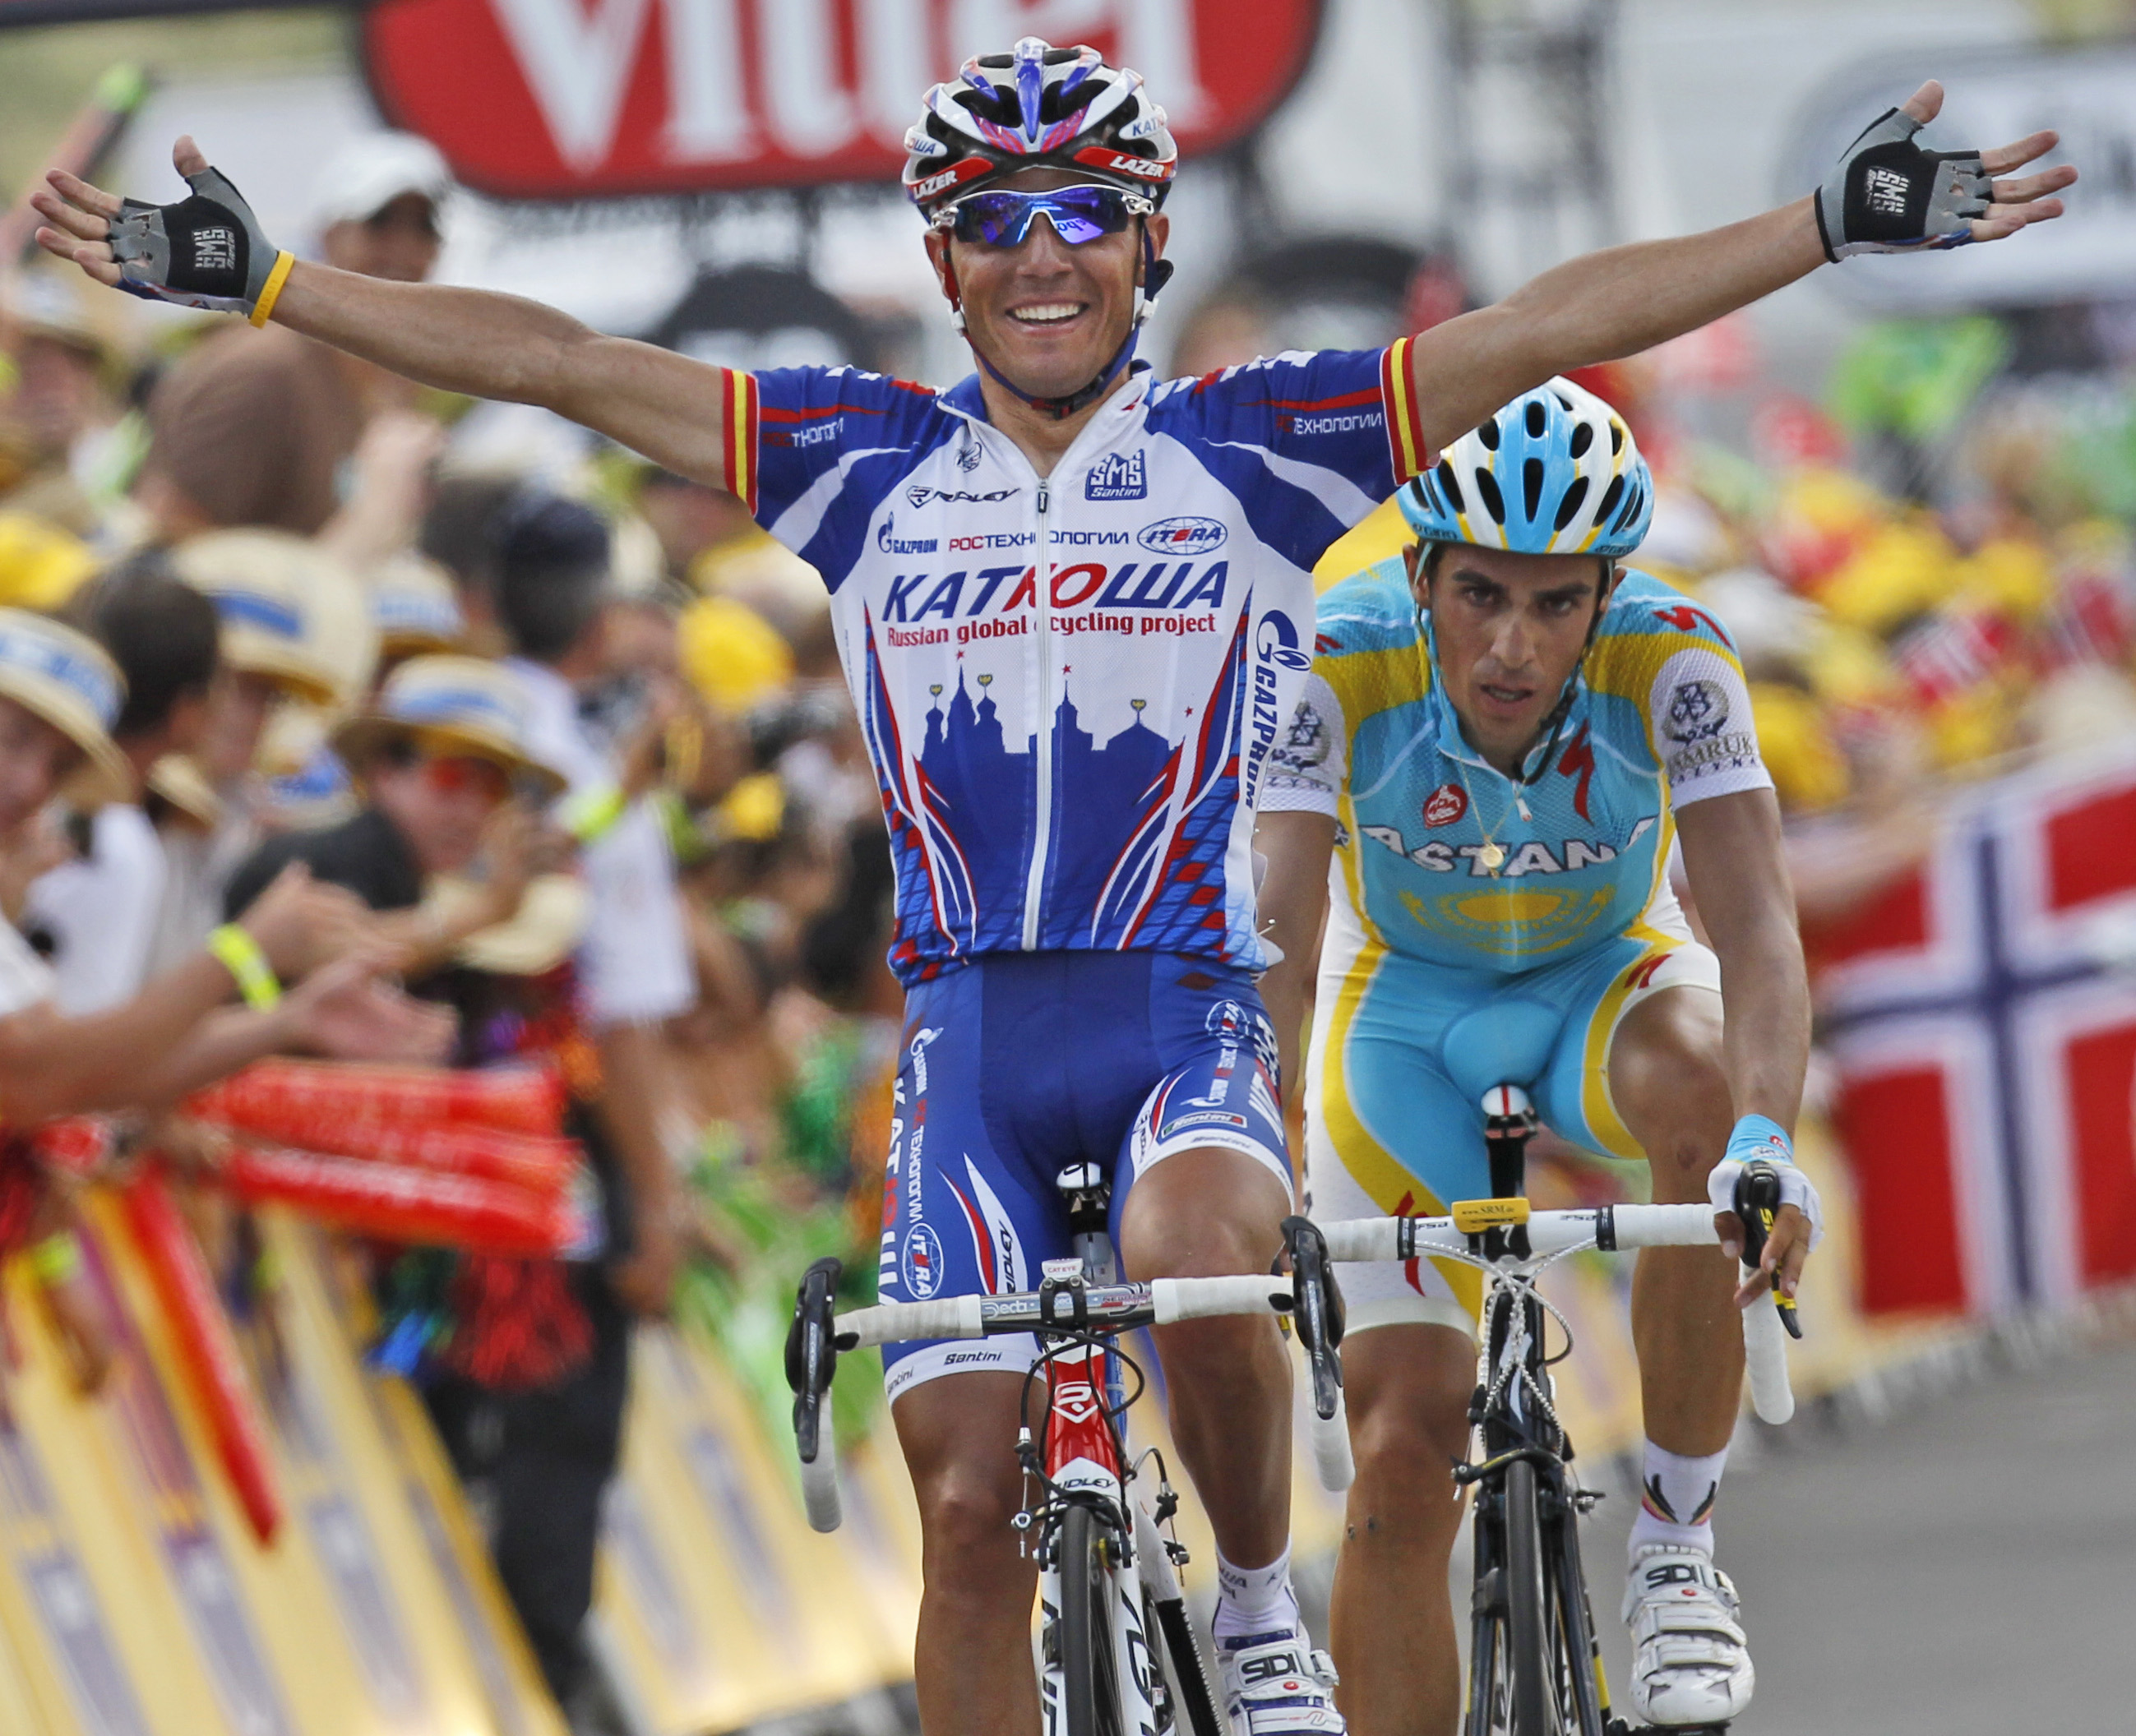 Joaquin Rodriguez Oliver of Spain, left, crosses the finish line to win the 12th stage of the Tour de France cycling race over 210.5 kilometers (130.8...